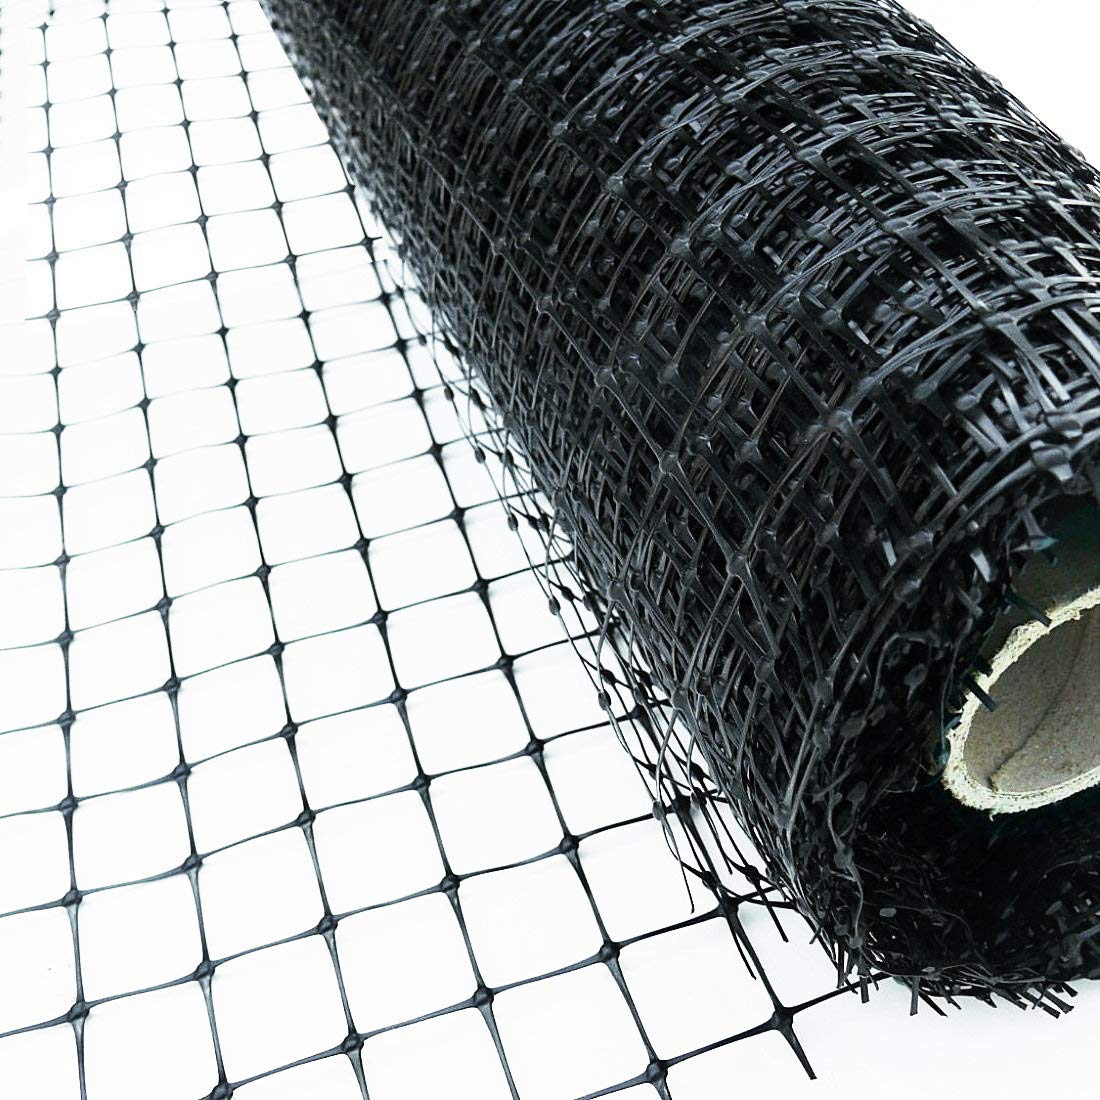 True Products 1.5m x 10m Deer Netting Fencing & Pheasant Netting Fencing 50mm Sq Large 80gsm Mesh, Garden Fencing Net, Crop Protection, Pond Cover, Pet and Wild Animal Fencing True Products ® N2001E-10M